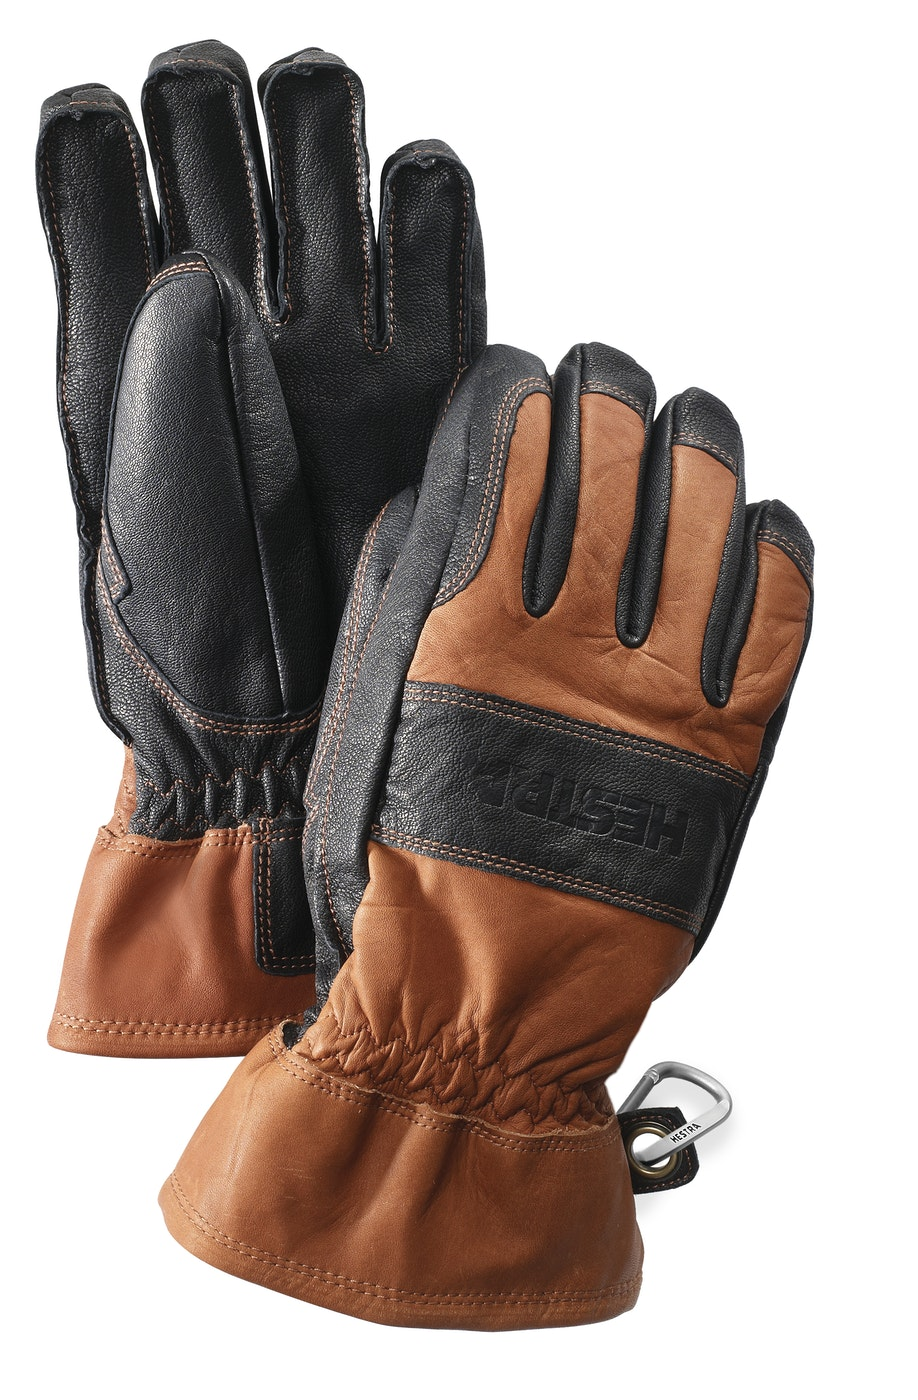 Product image for 31270 Fält Guide Glove